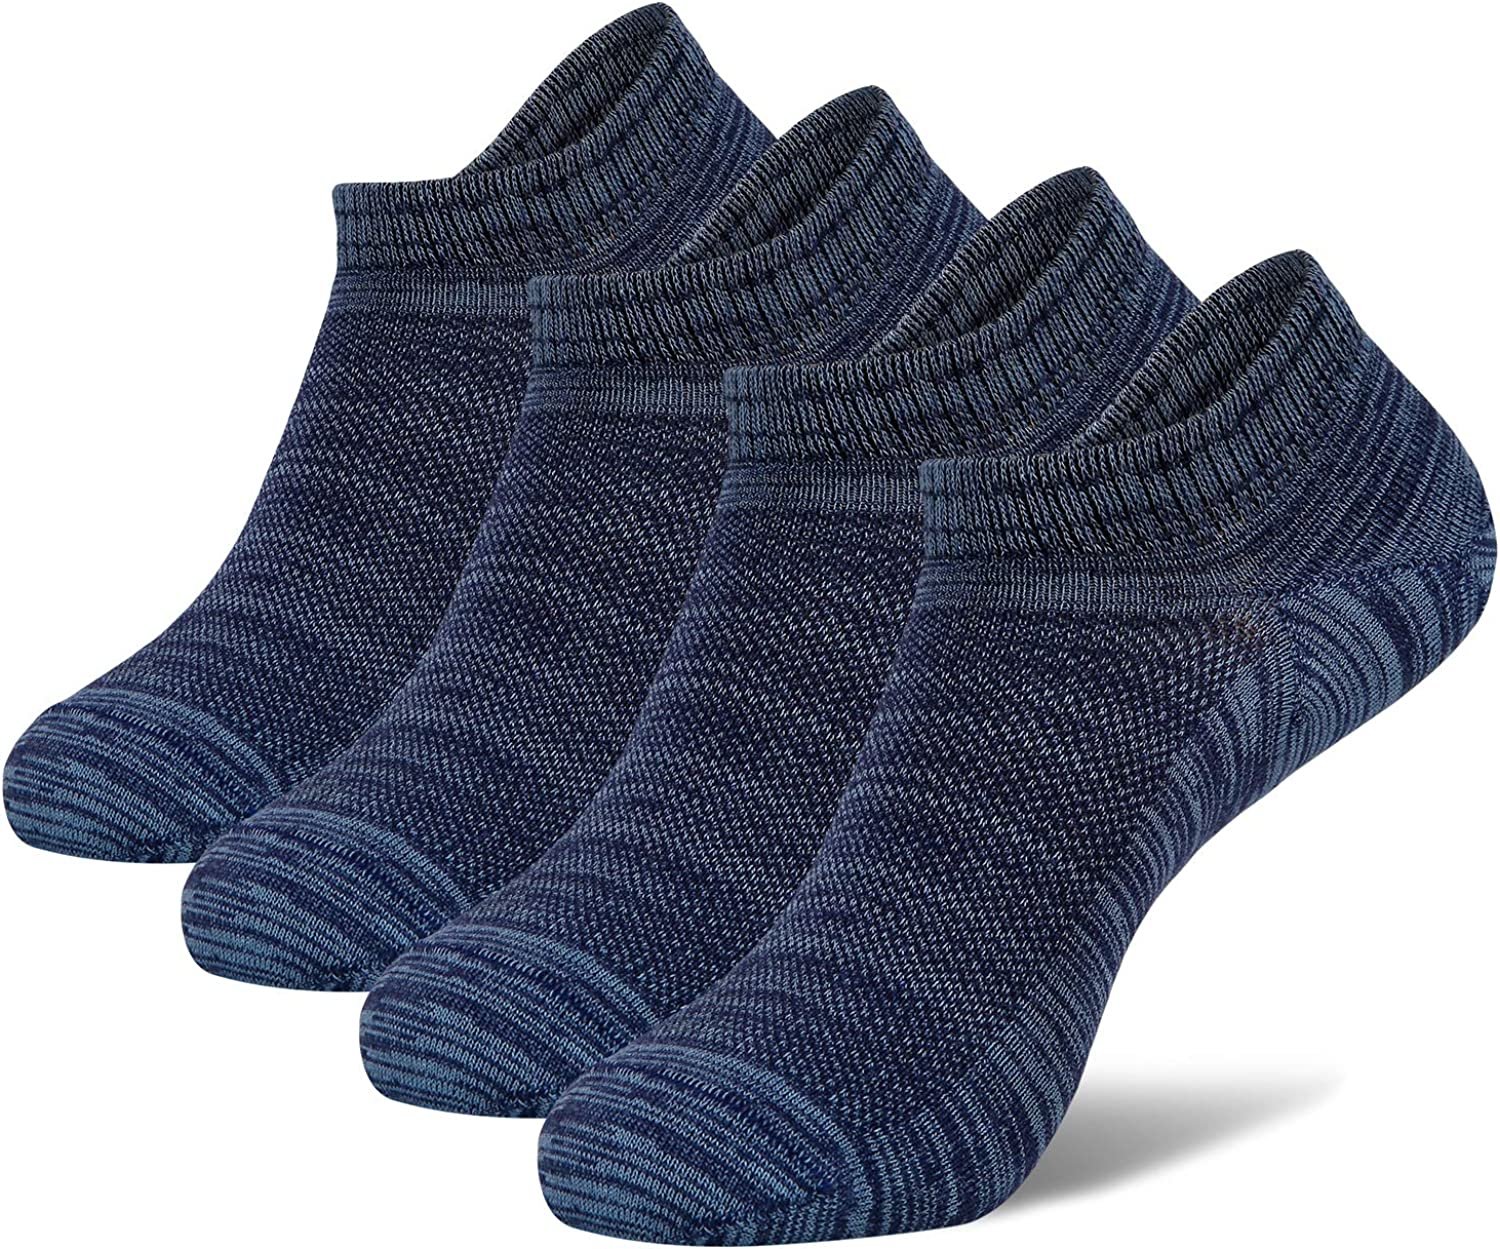 +MD Mens Bamboo No Show Low Cut Breathable Casual Socks with Seamless Toe & Flat Knit 4/6 Pack